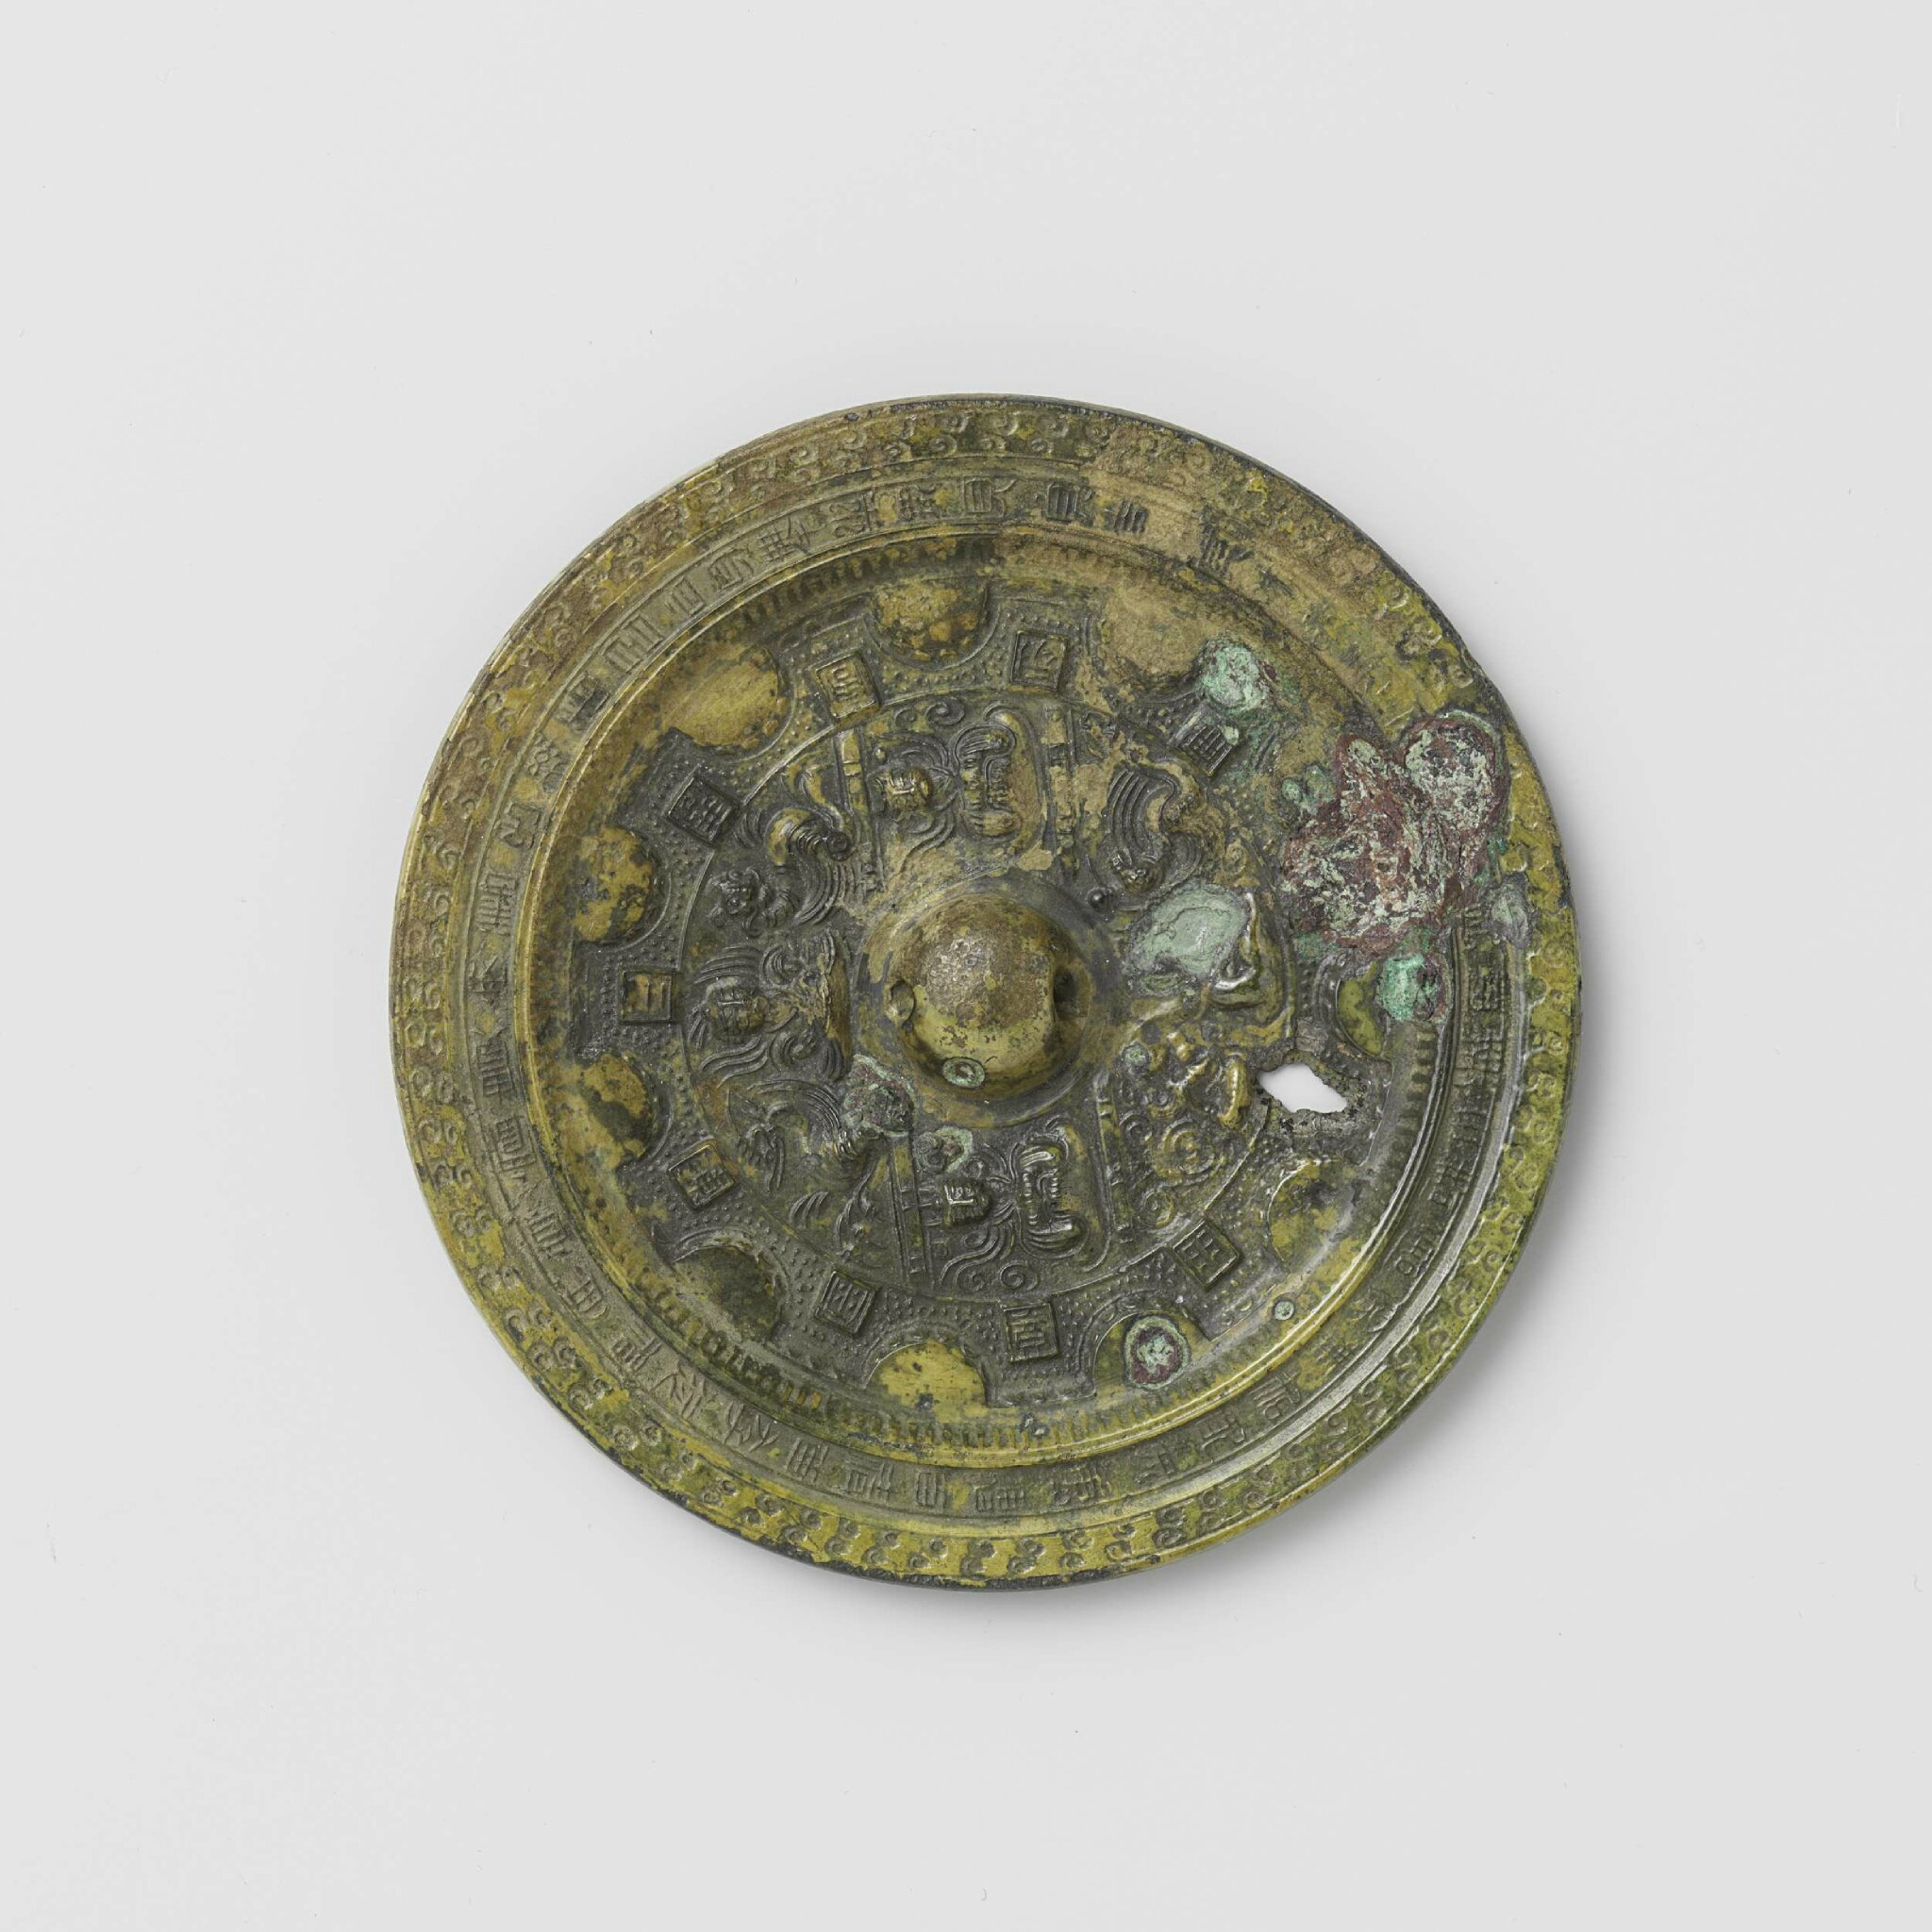 Bronze mirror with geometric patterns and stylized animals, Three Kingdoms period, 200-300